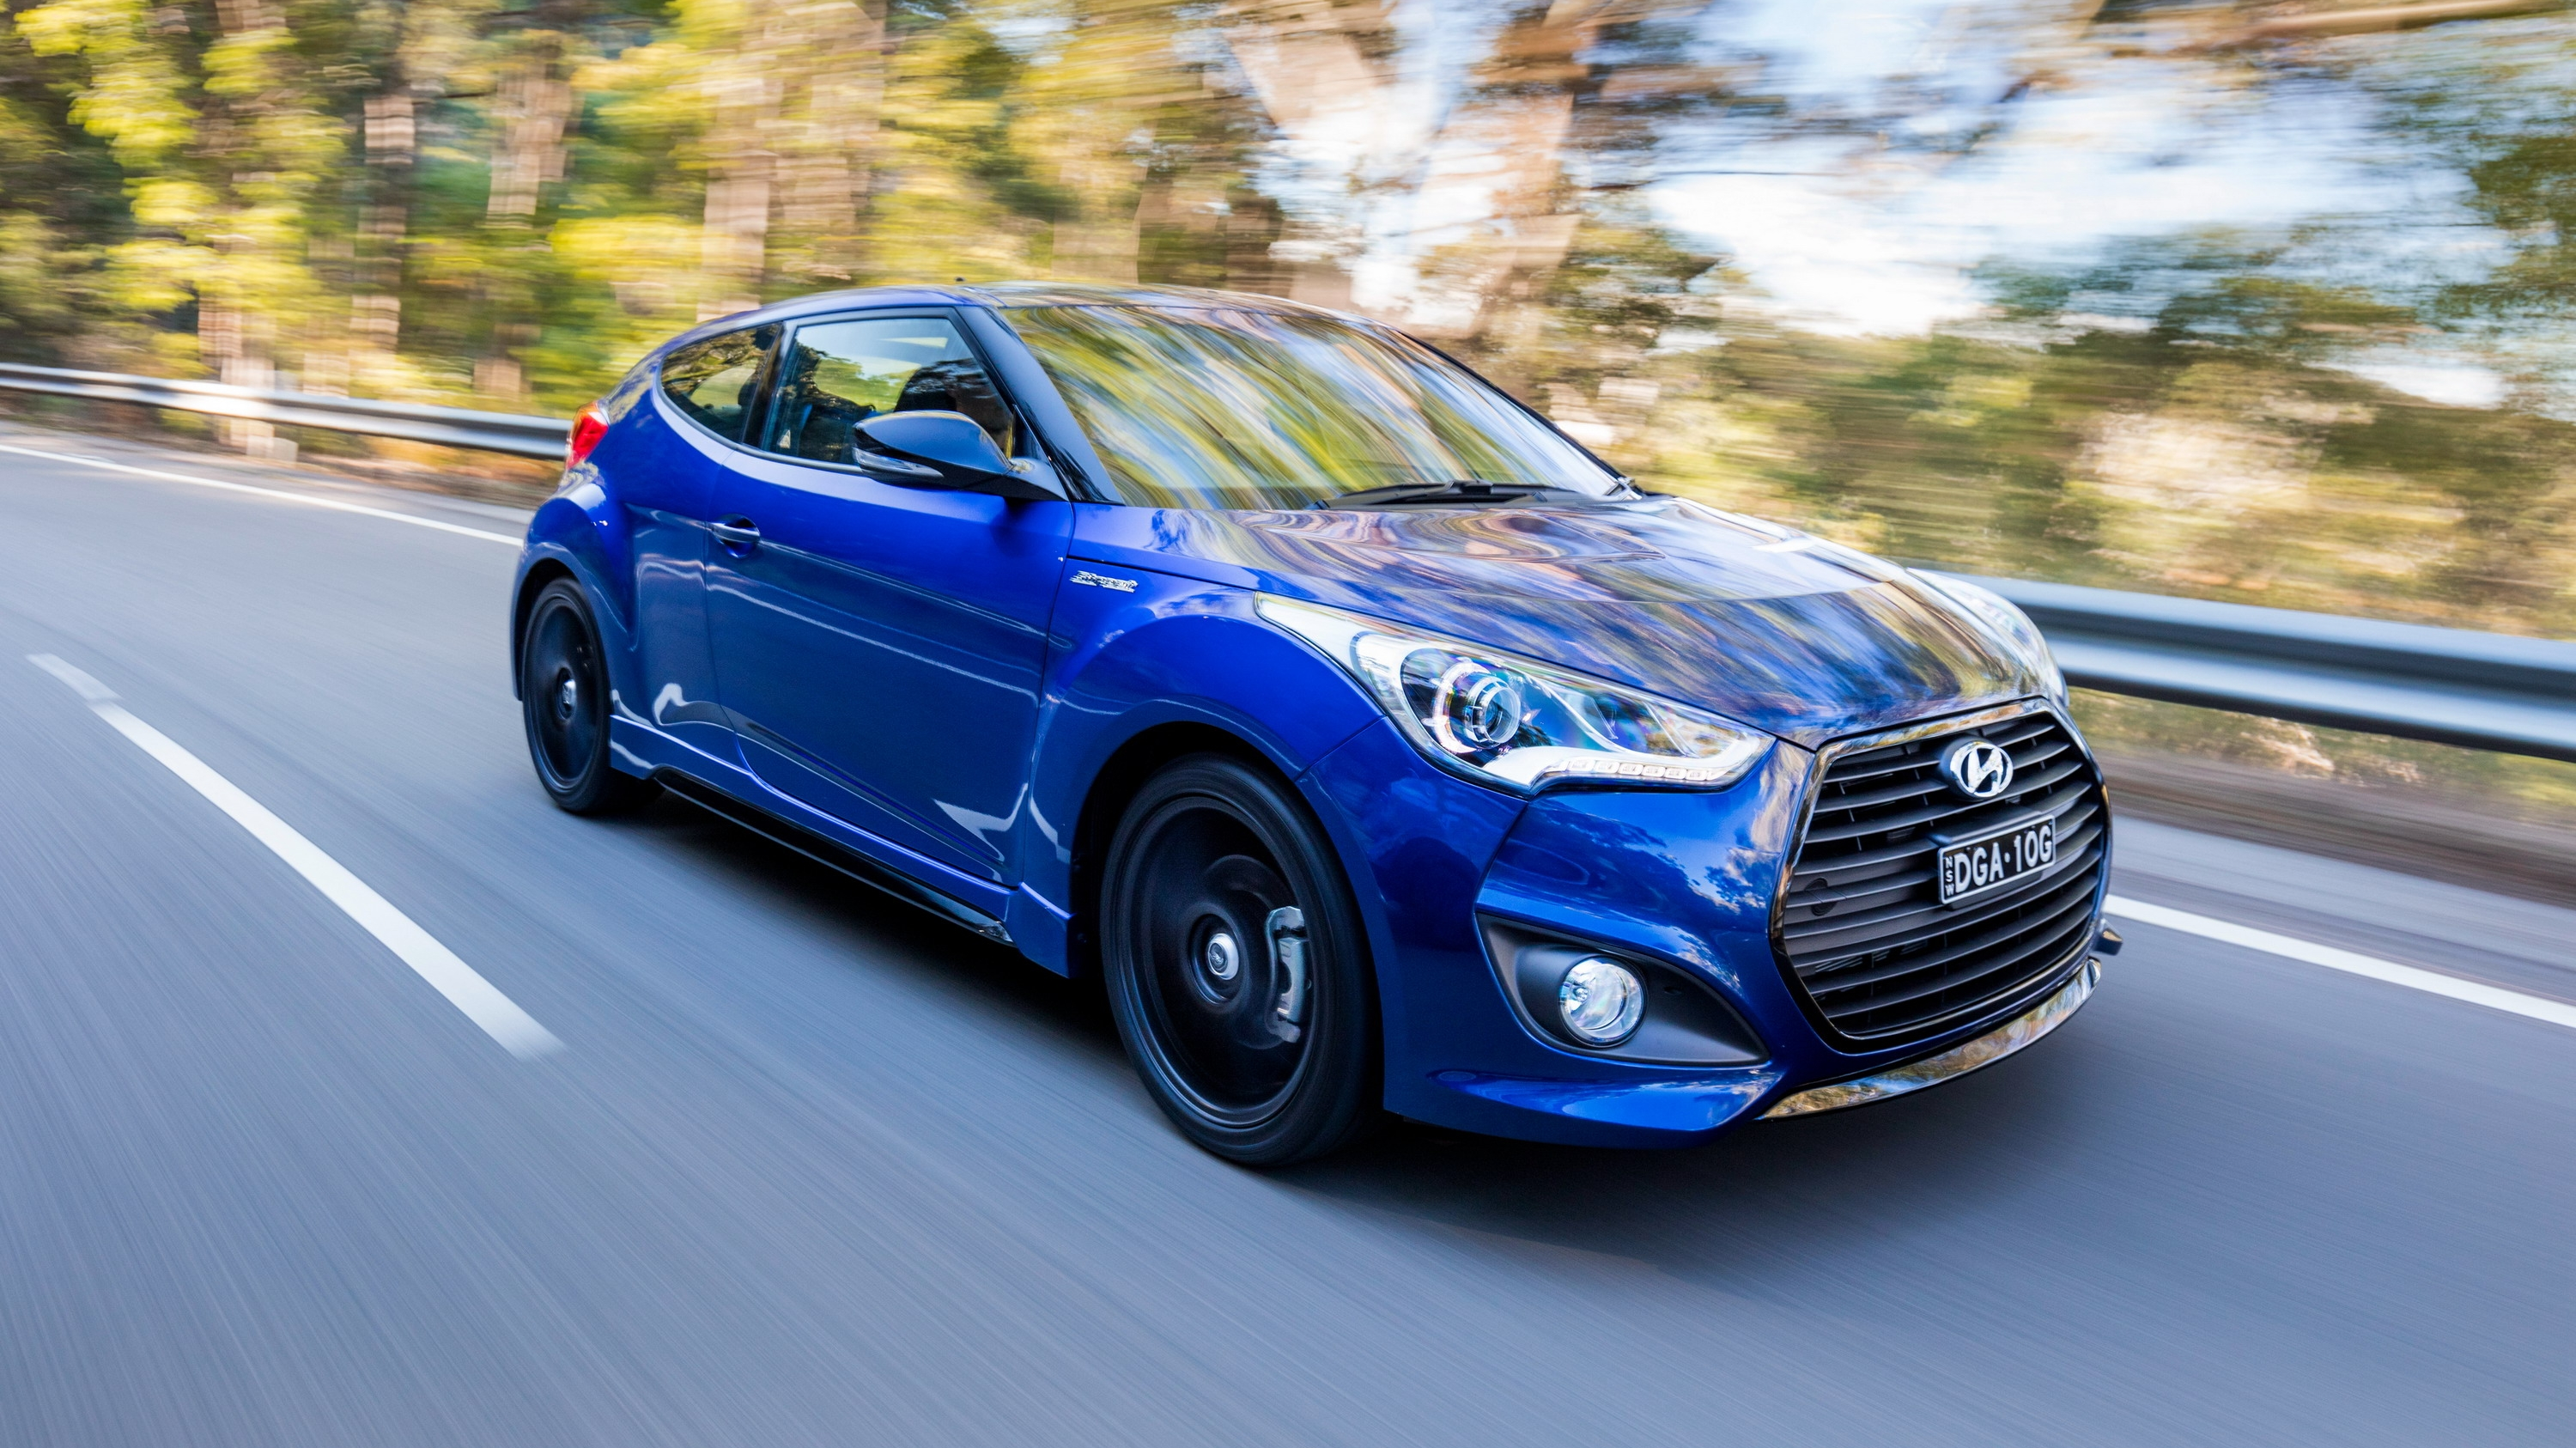 Hyundai wanted to make a special edition model of its sporty veloster and there was no better way than to start with the veloster series ii sr turbo